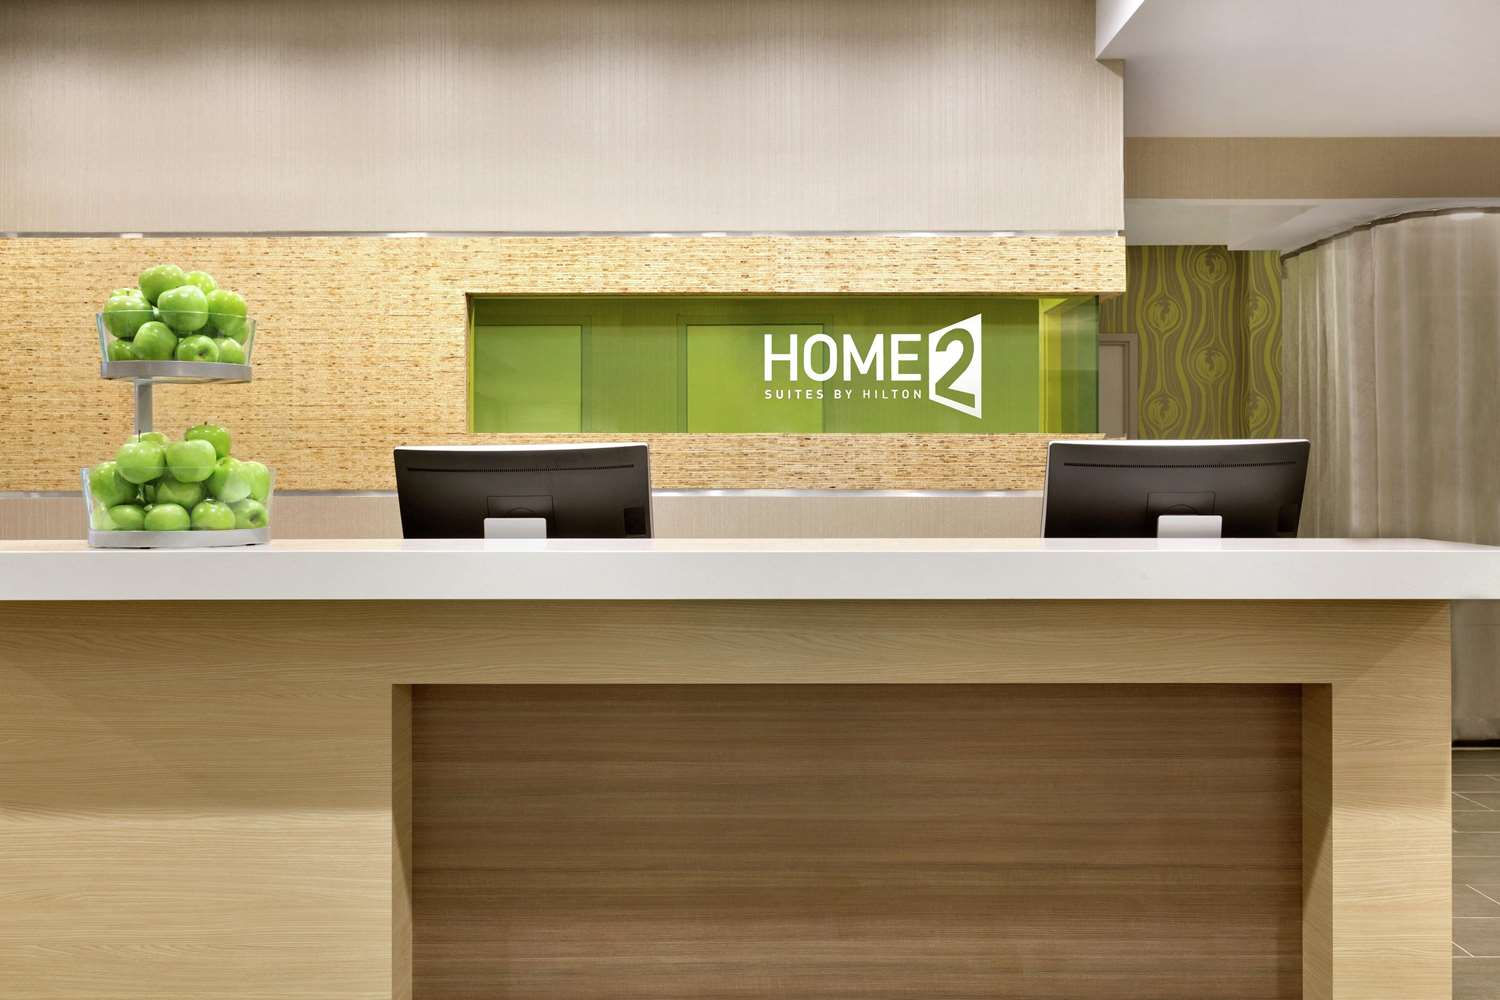 Lobby - Home2 Suites by Hilton Cincinnati Airport South Florence